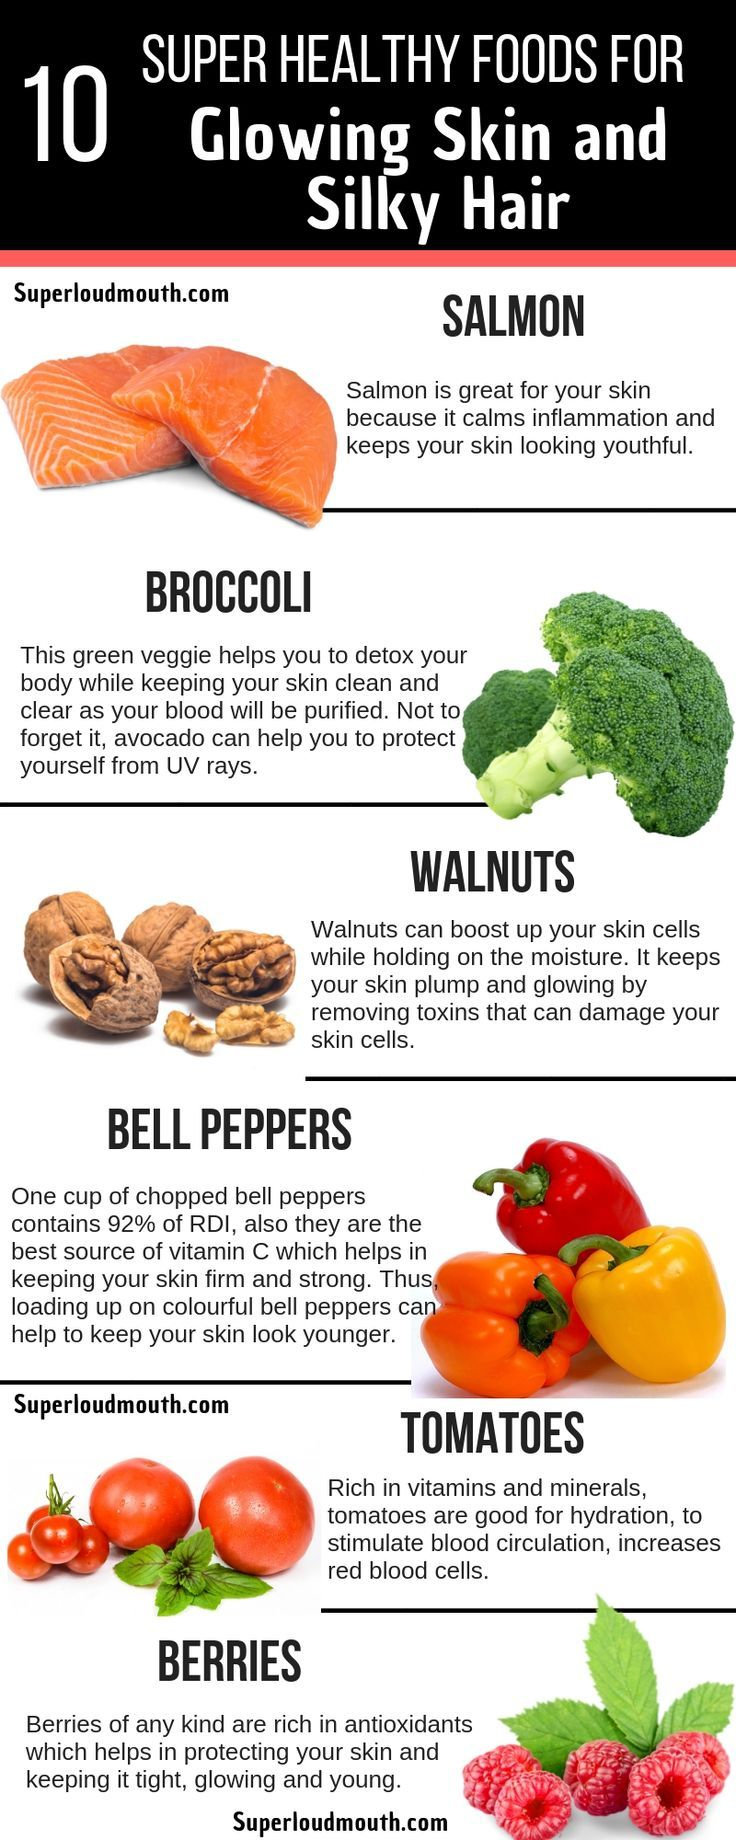 10 Super Healthy Foods To Attain Ravishing Skin And Silky Hair Foods For Healthy Skin Super Healthy Recipes Food For Glowing Skin